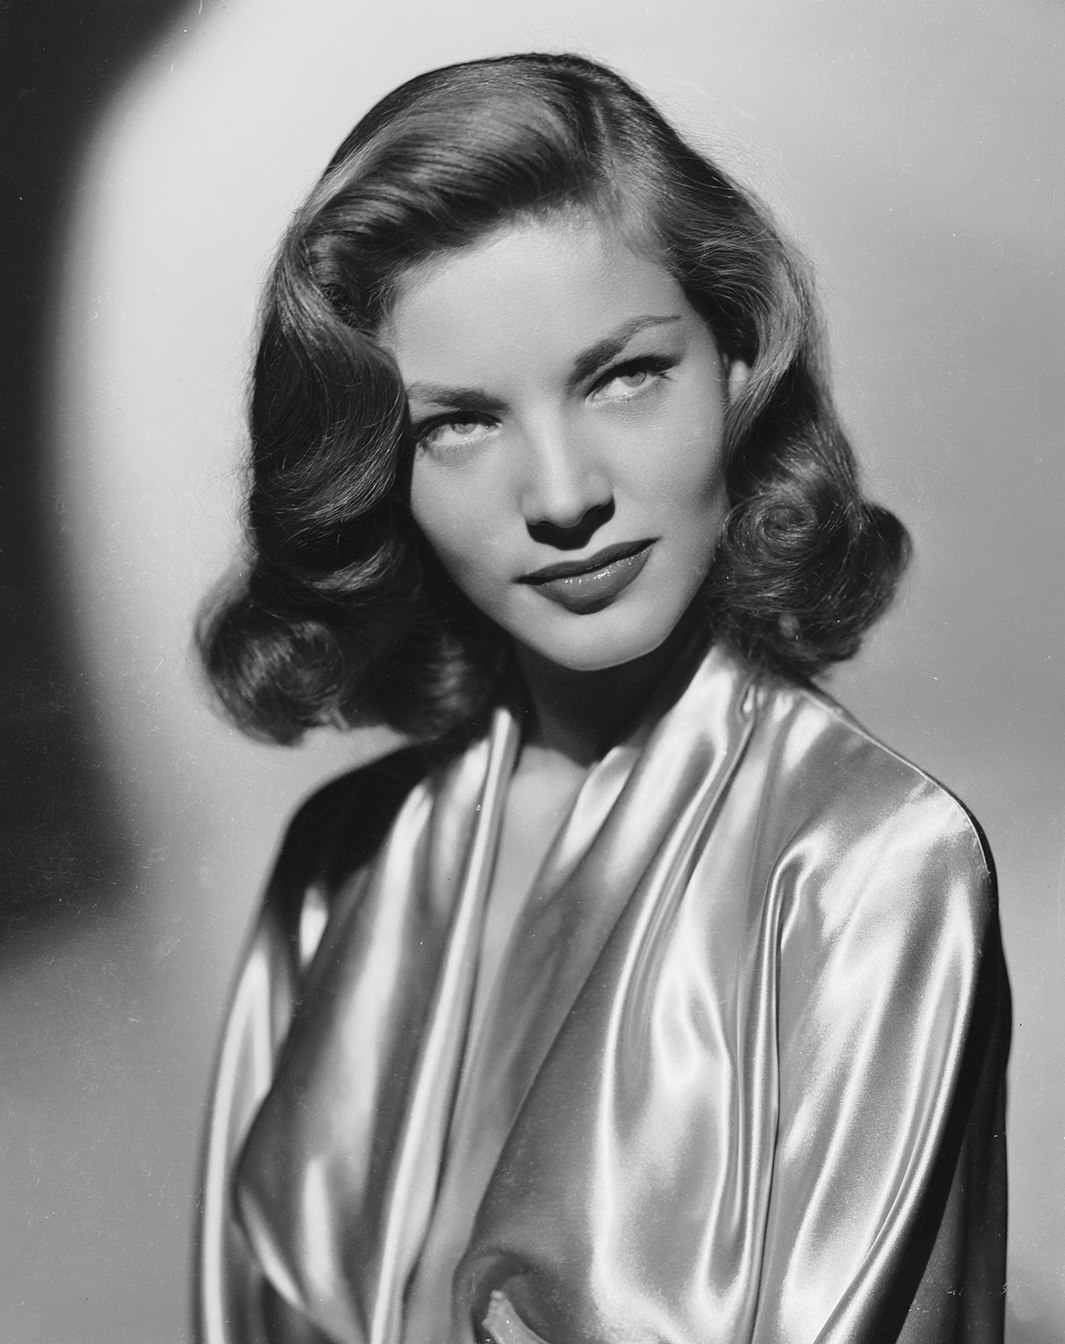 Photos Of Lauren Bacall The Sultry Star Of The Hollywood